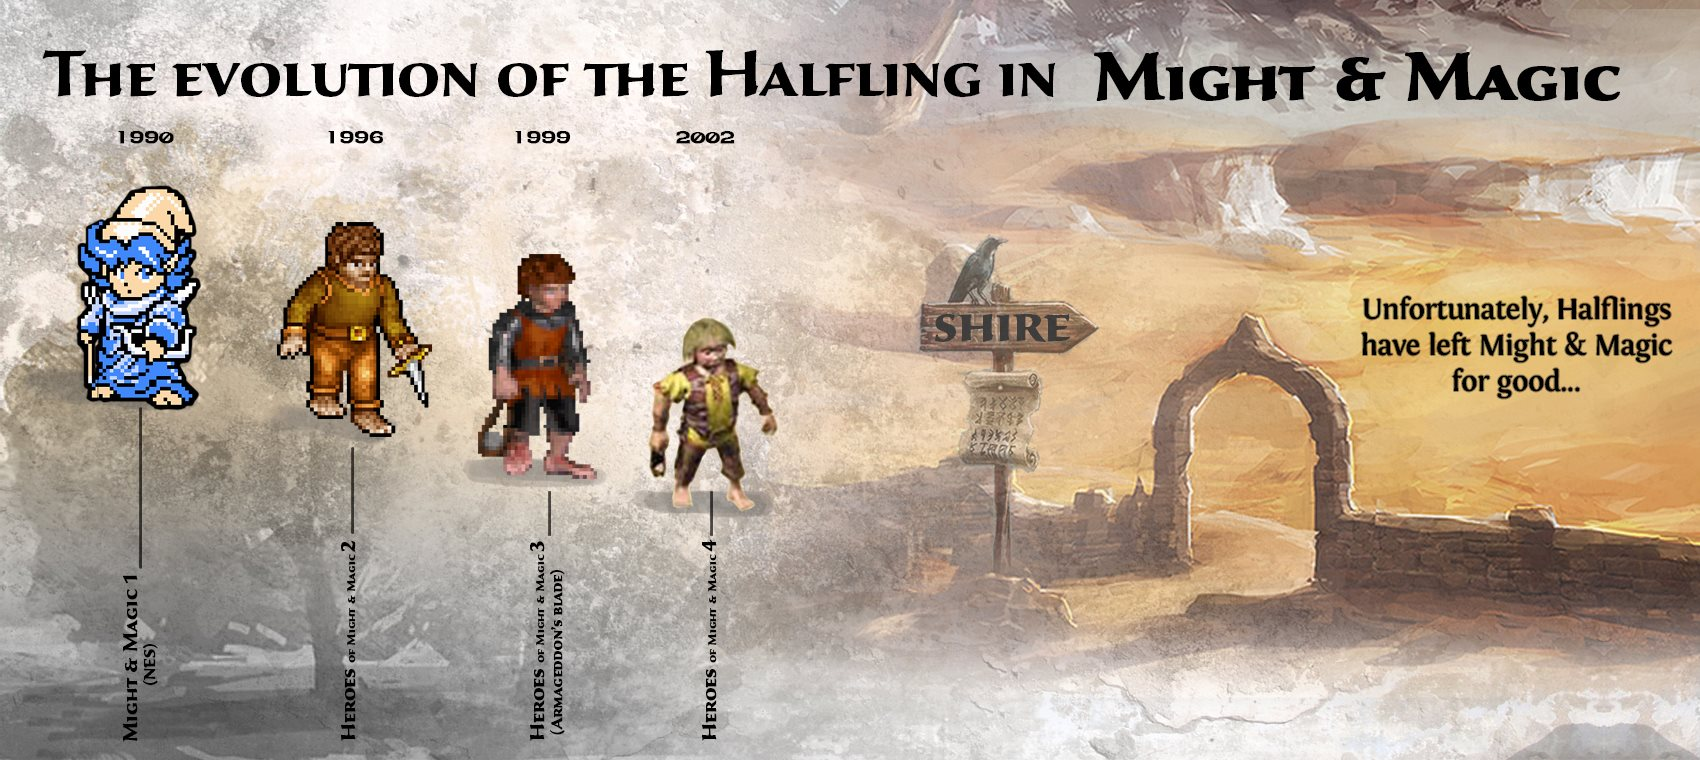 The evolution of the Halfling in Might and Magic